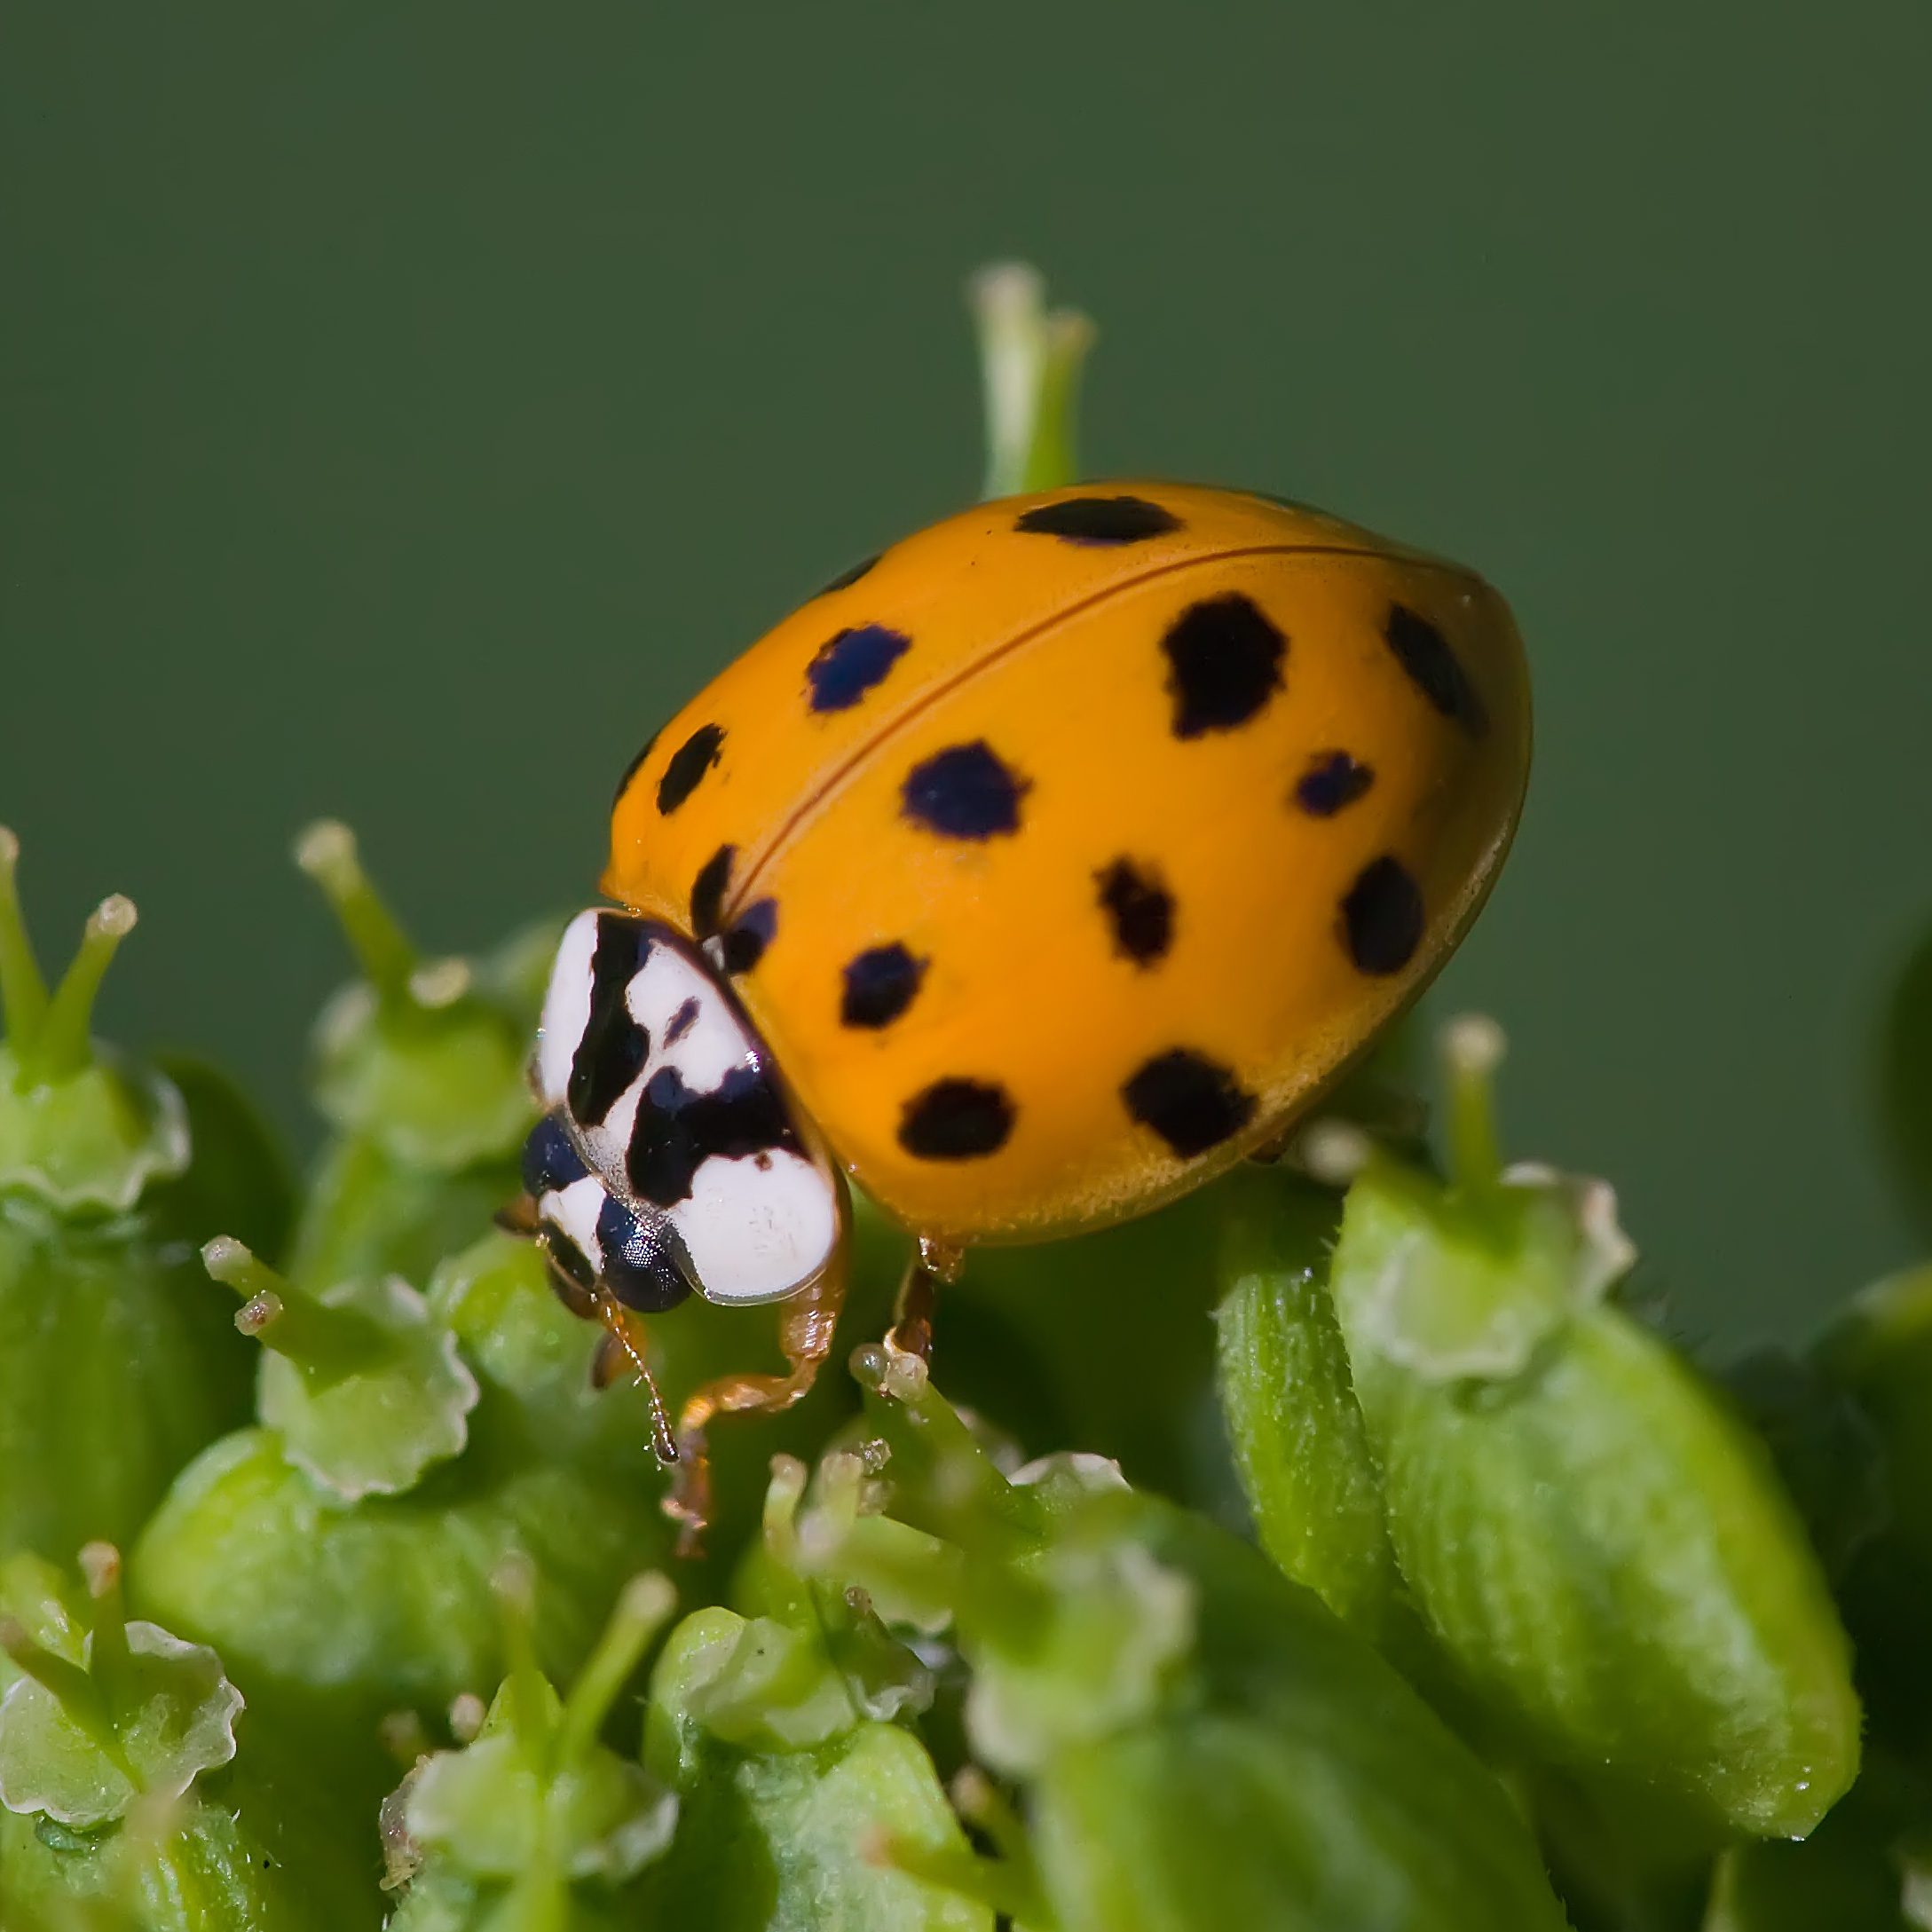 Japanese Lady beetle with yellow body and black spots on plant